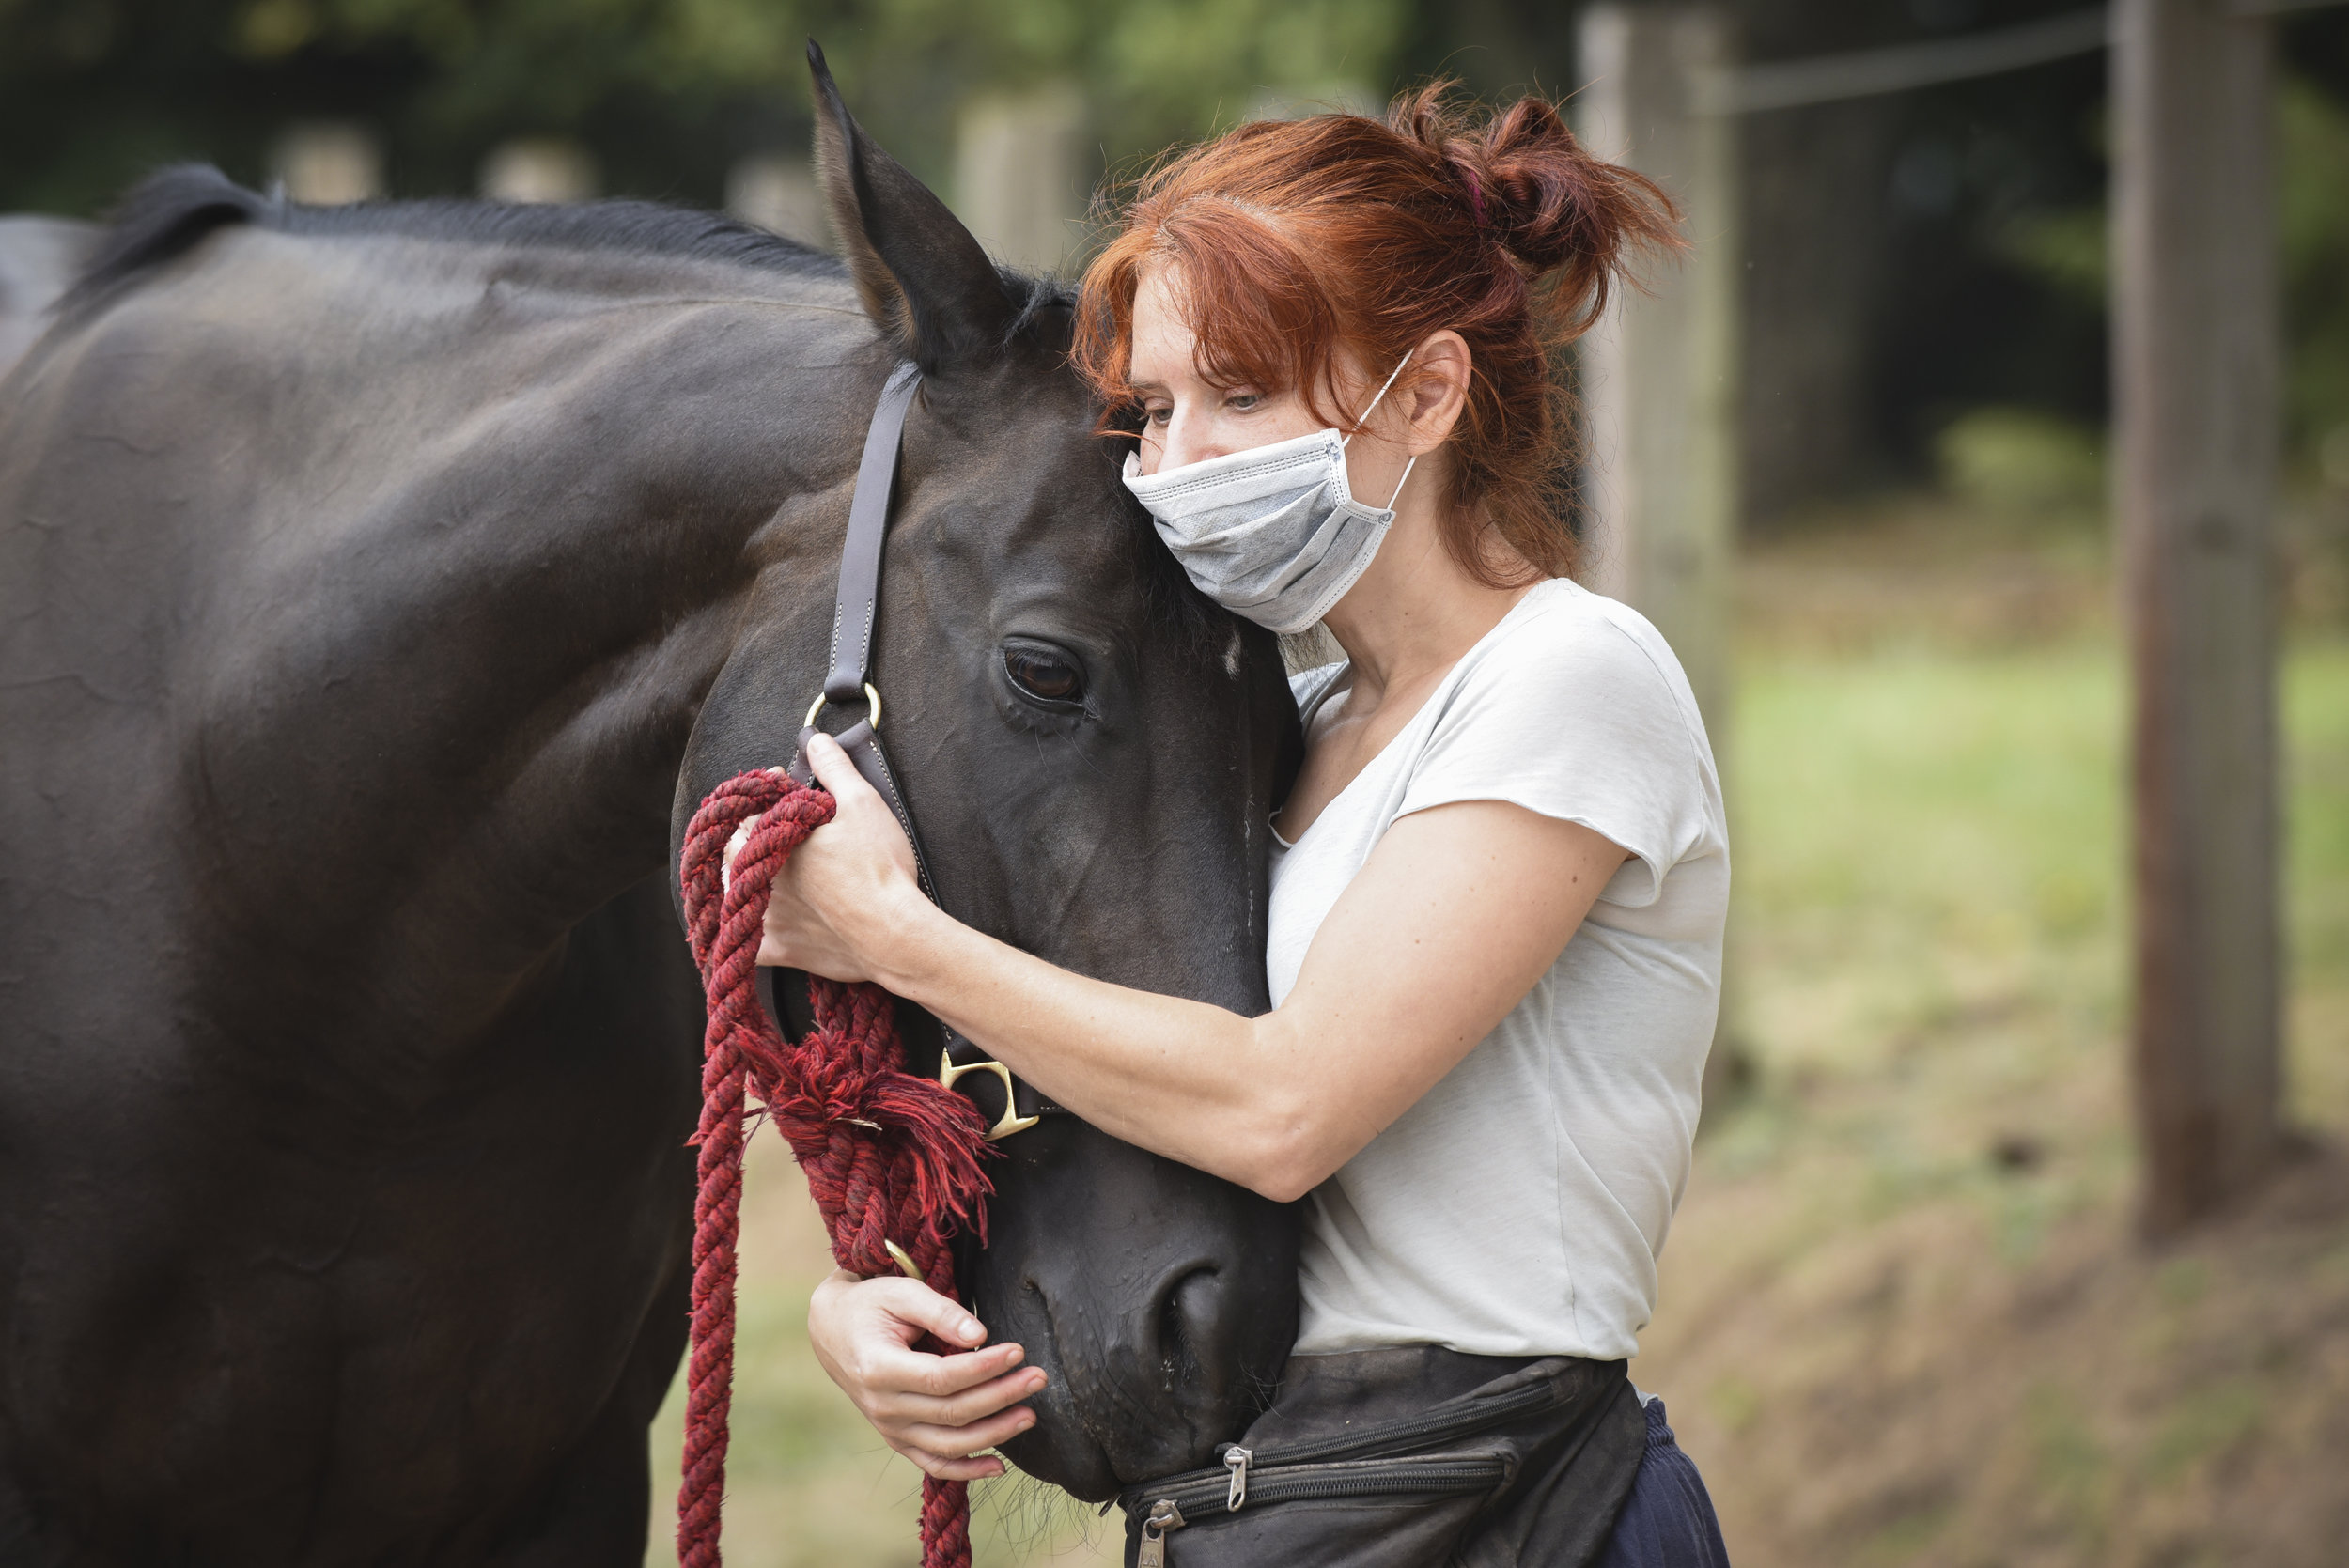 Elizabeth Nicholson shares a moment with her 10-year-old thoroughbred, Saoirse, at the Clark County Fairgrounds, Wednesday September 6, 2017, after all horses at Windy Ridge Farm in Washougal were evacuated because of the Eagle Creek fire threat in Skamania County. Saoirse is one of 22 horses at Windy Ridge Farm that were taken to the Clark County Fairgrounds for safety until further notice. The Eagle Creek fire in the Columbia River Gorge burned 48,573 acres total and temporarily displaced hundreds. The smoke and ash caused many people to wear facemasks when outdoors. (Ariane Kunze/The Columbian)